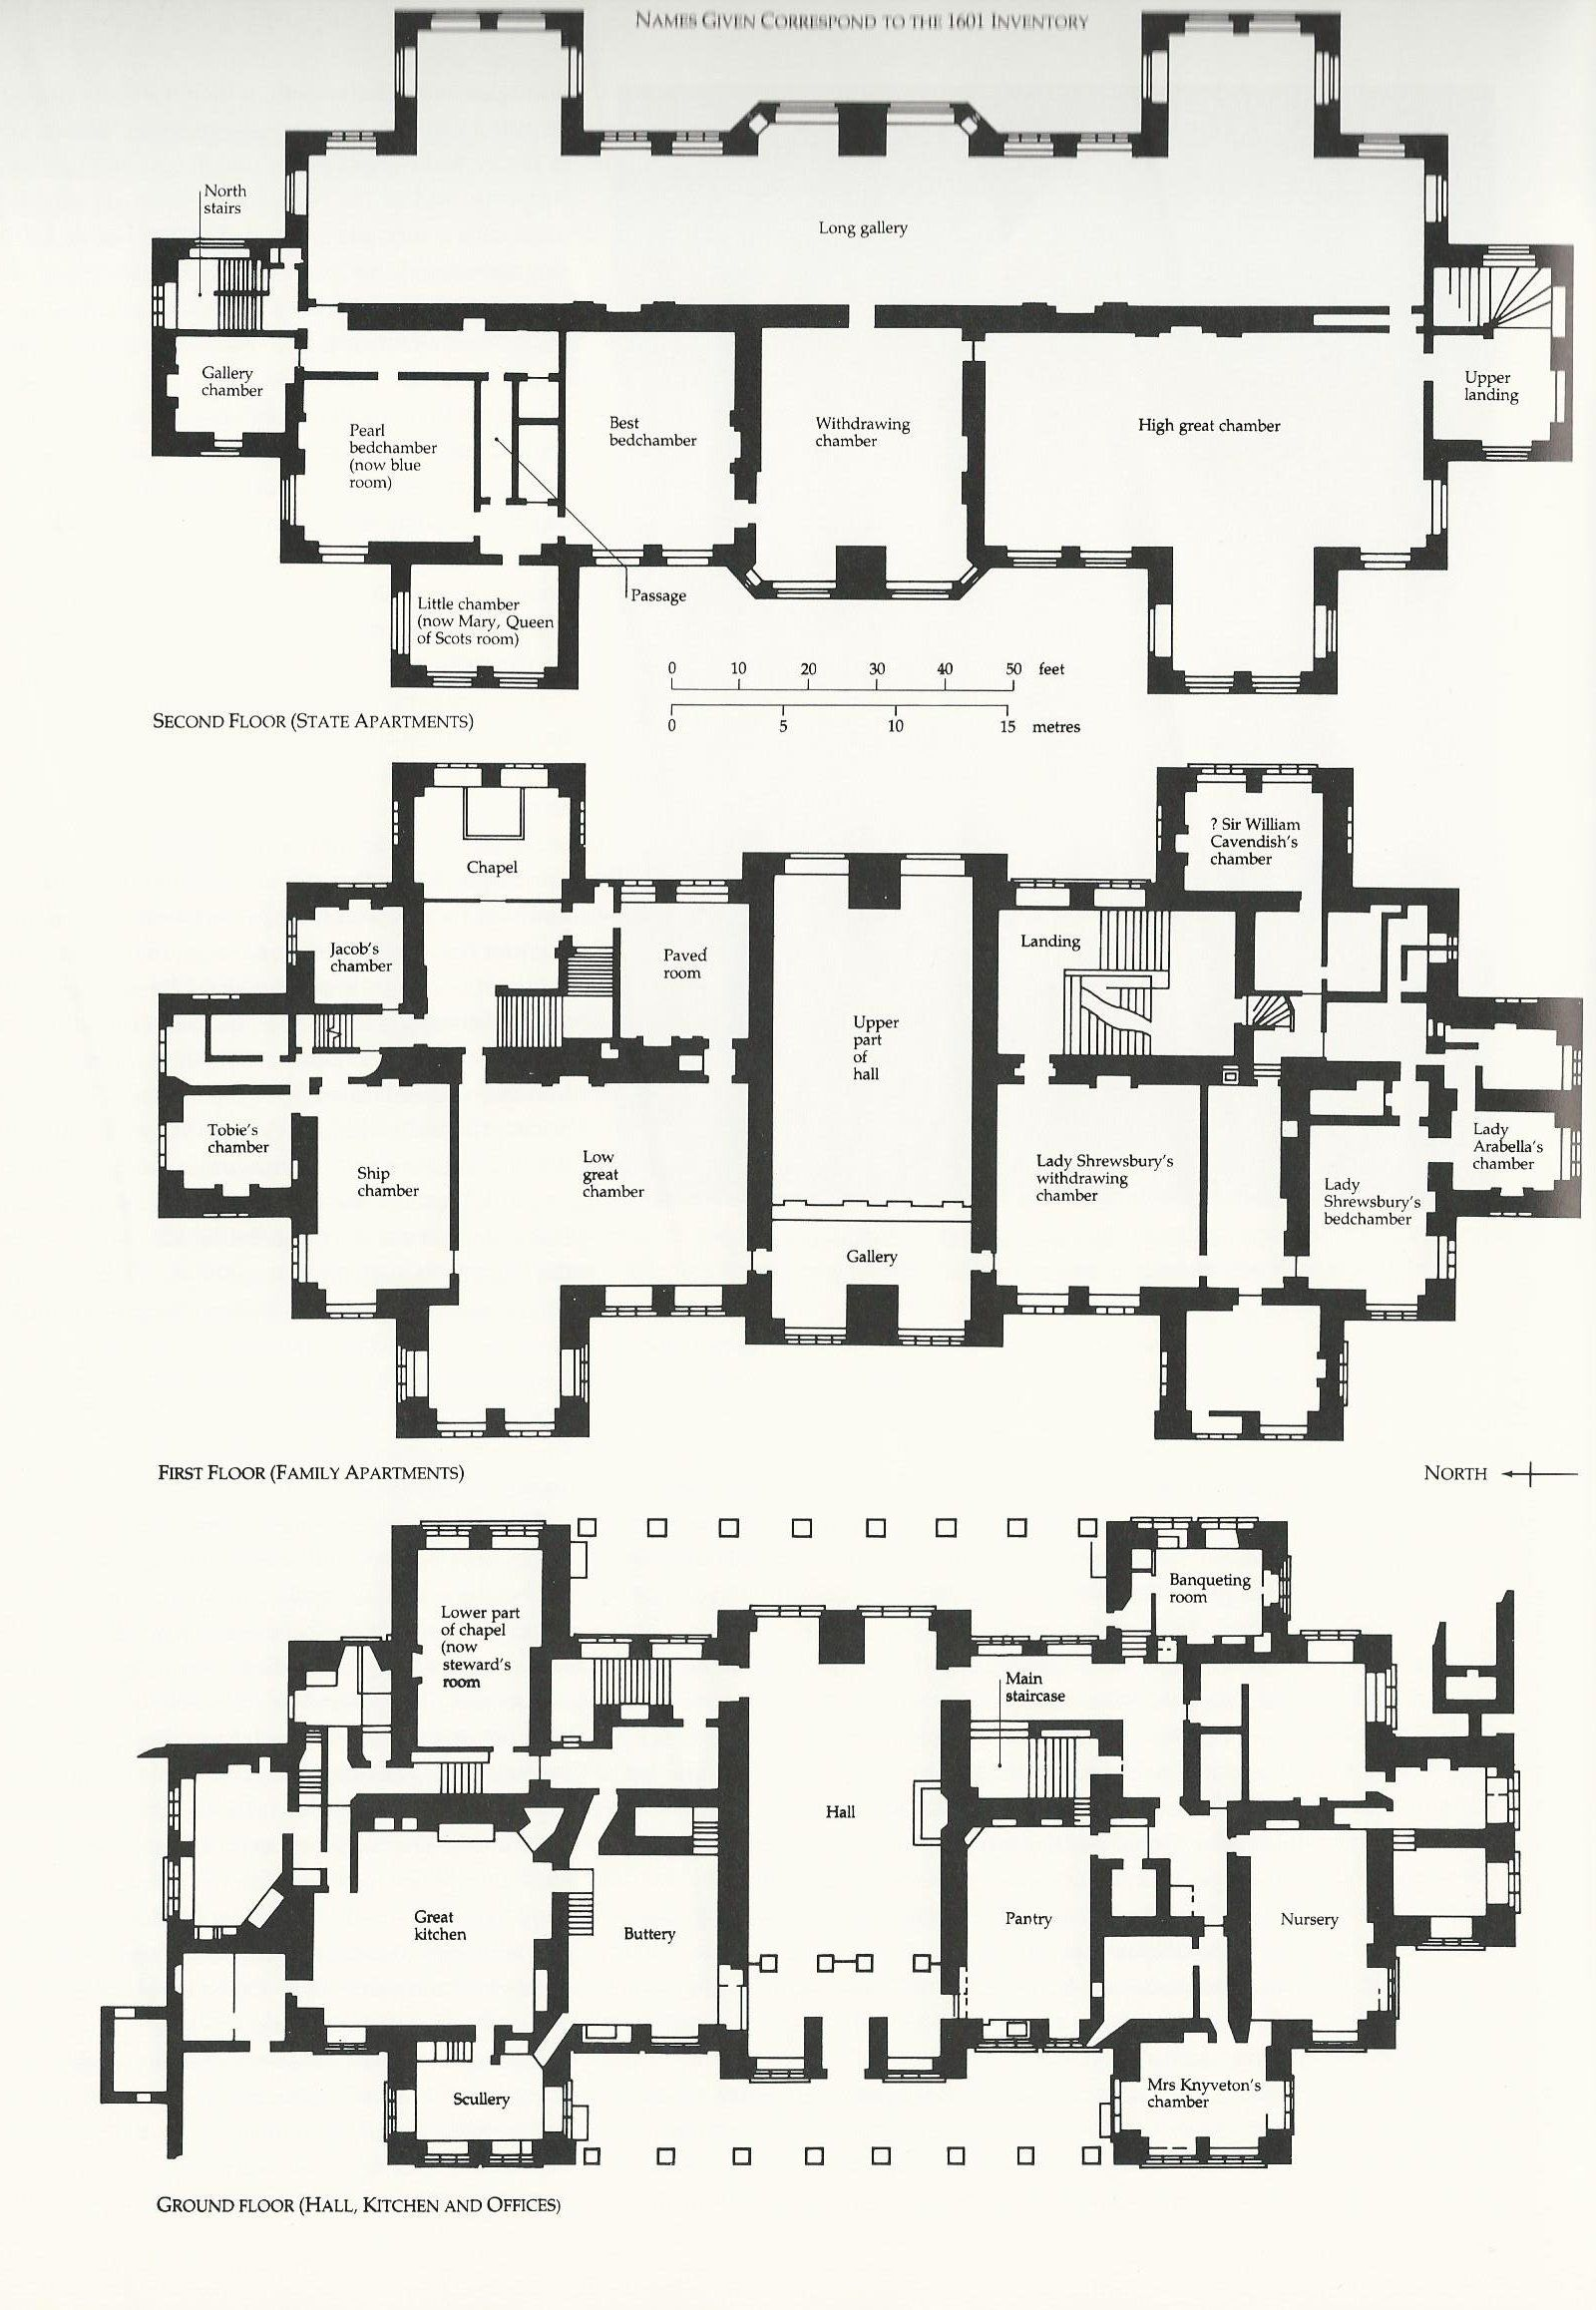 Hardwickplan houseplans mansions and castles for Castle blueprints and plans